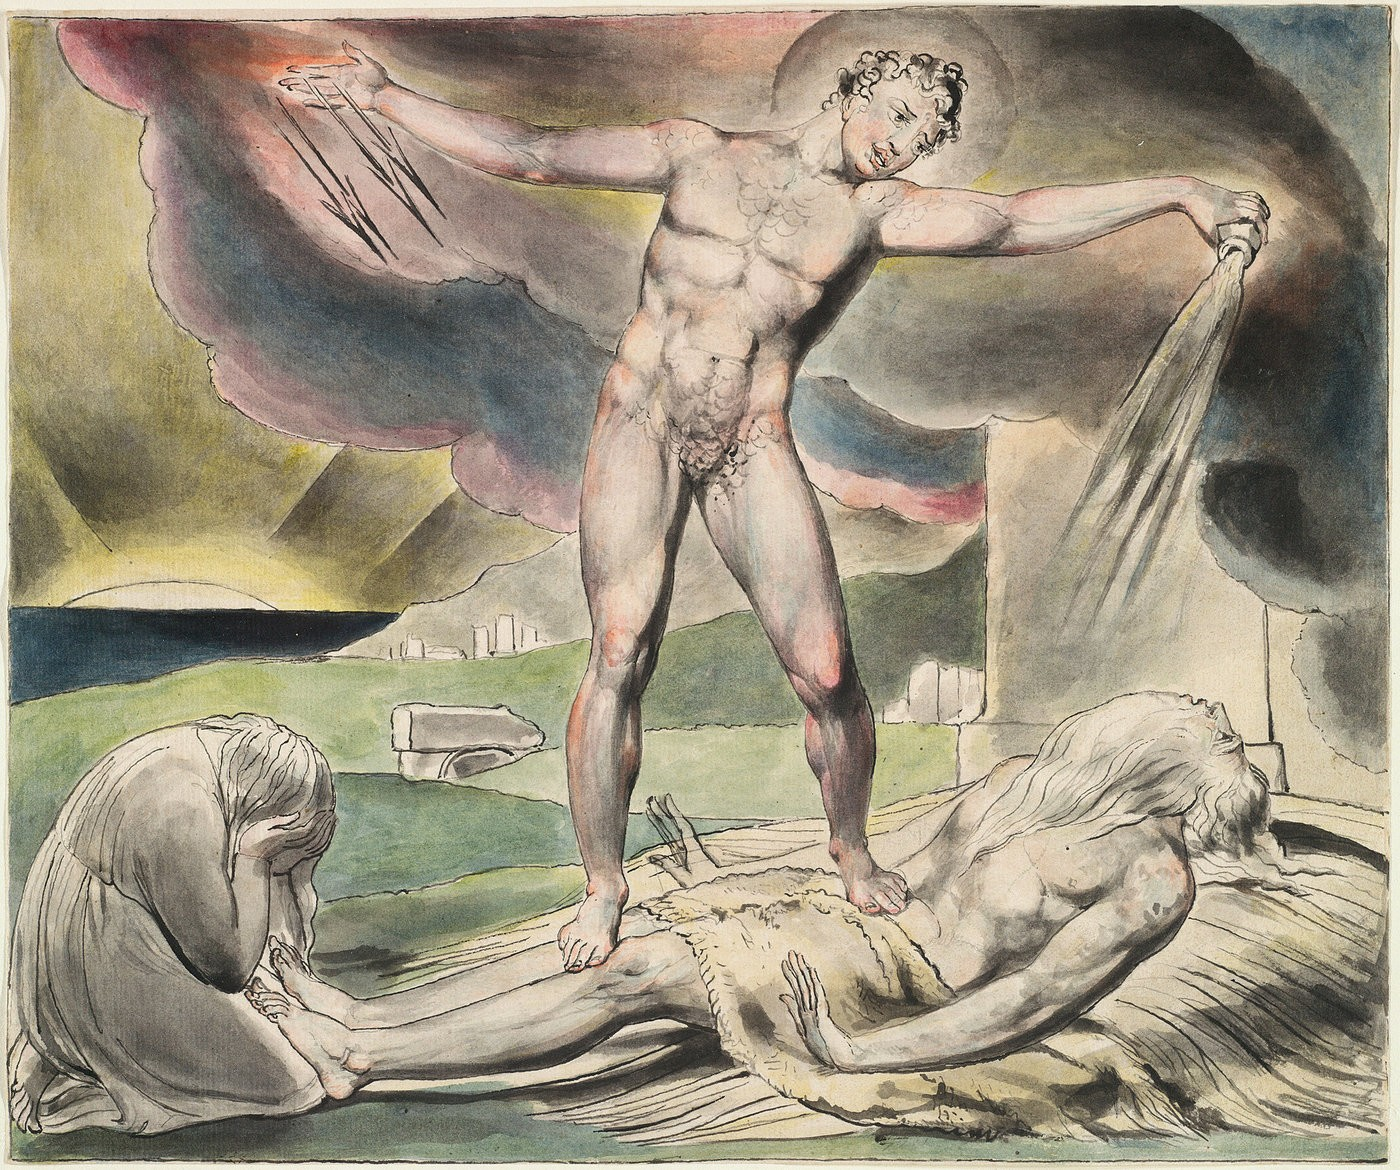 Medium blake book of job the examination of job  satan pours on the plagues of job  by william blake. illustration was made c. 1821 credit the morgan library